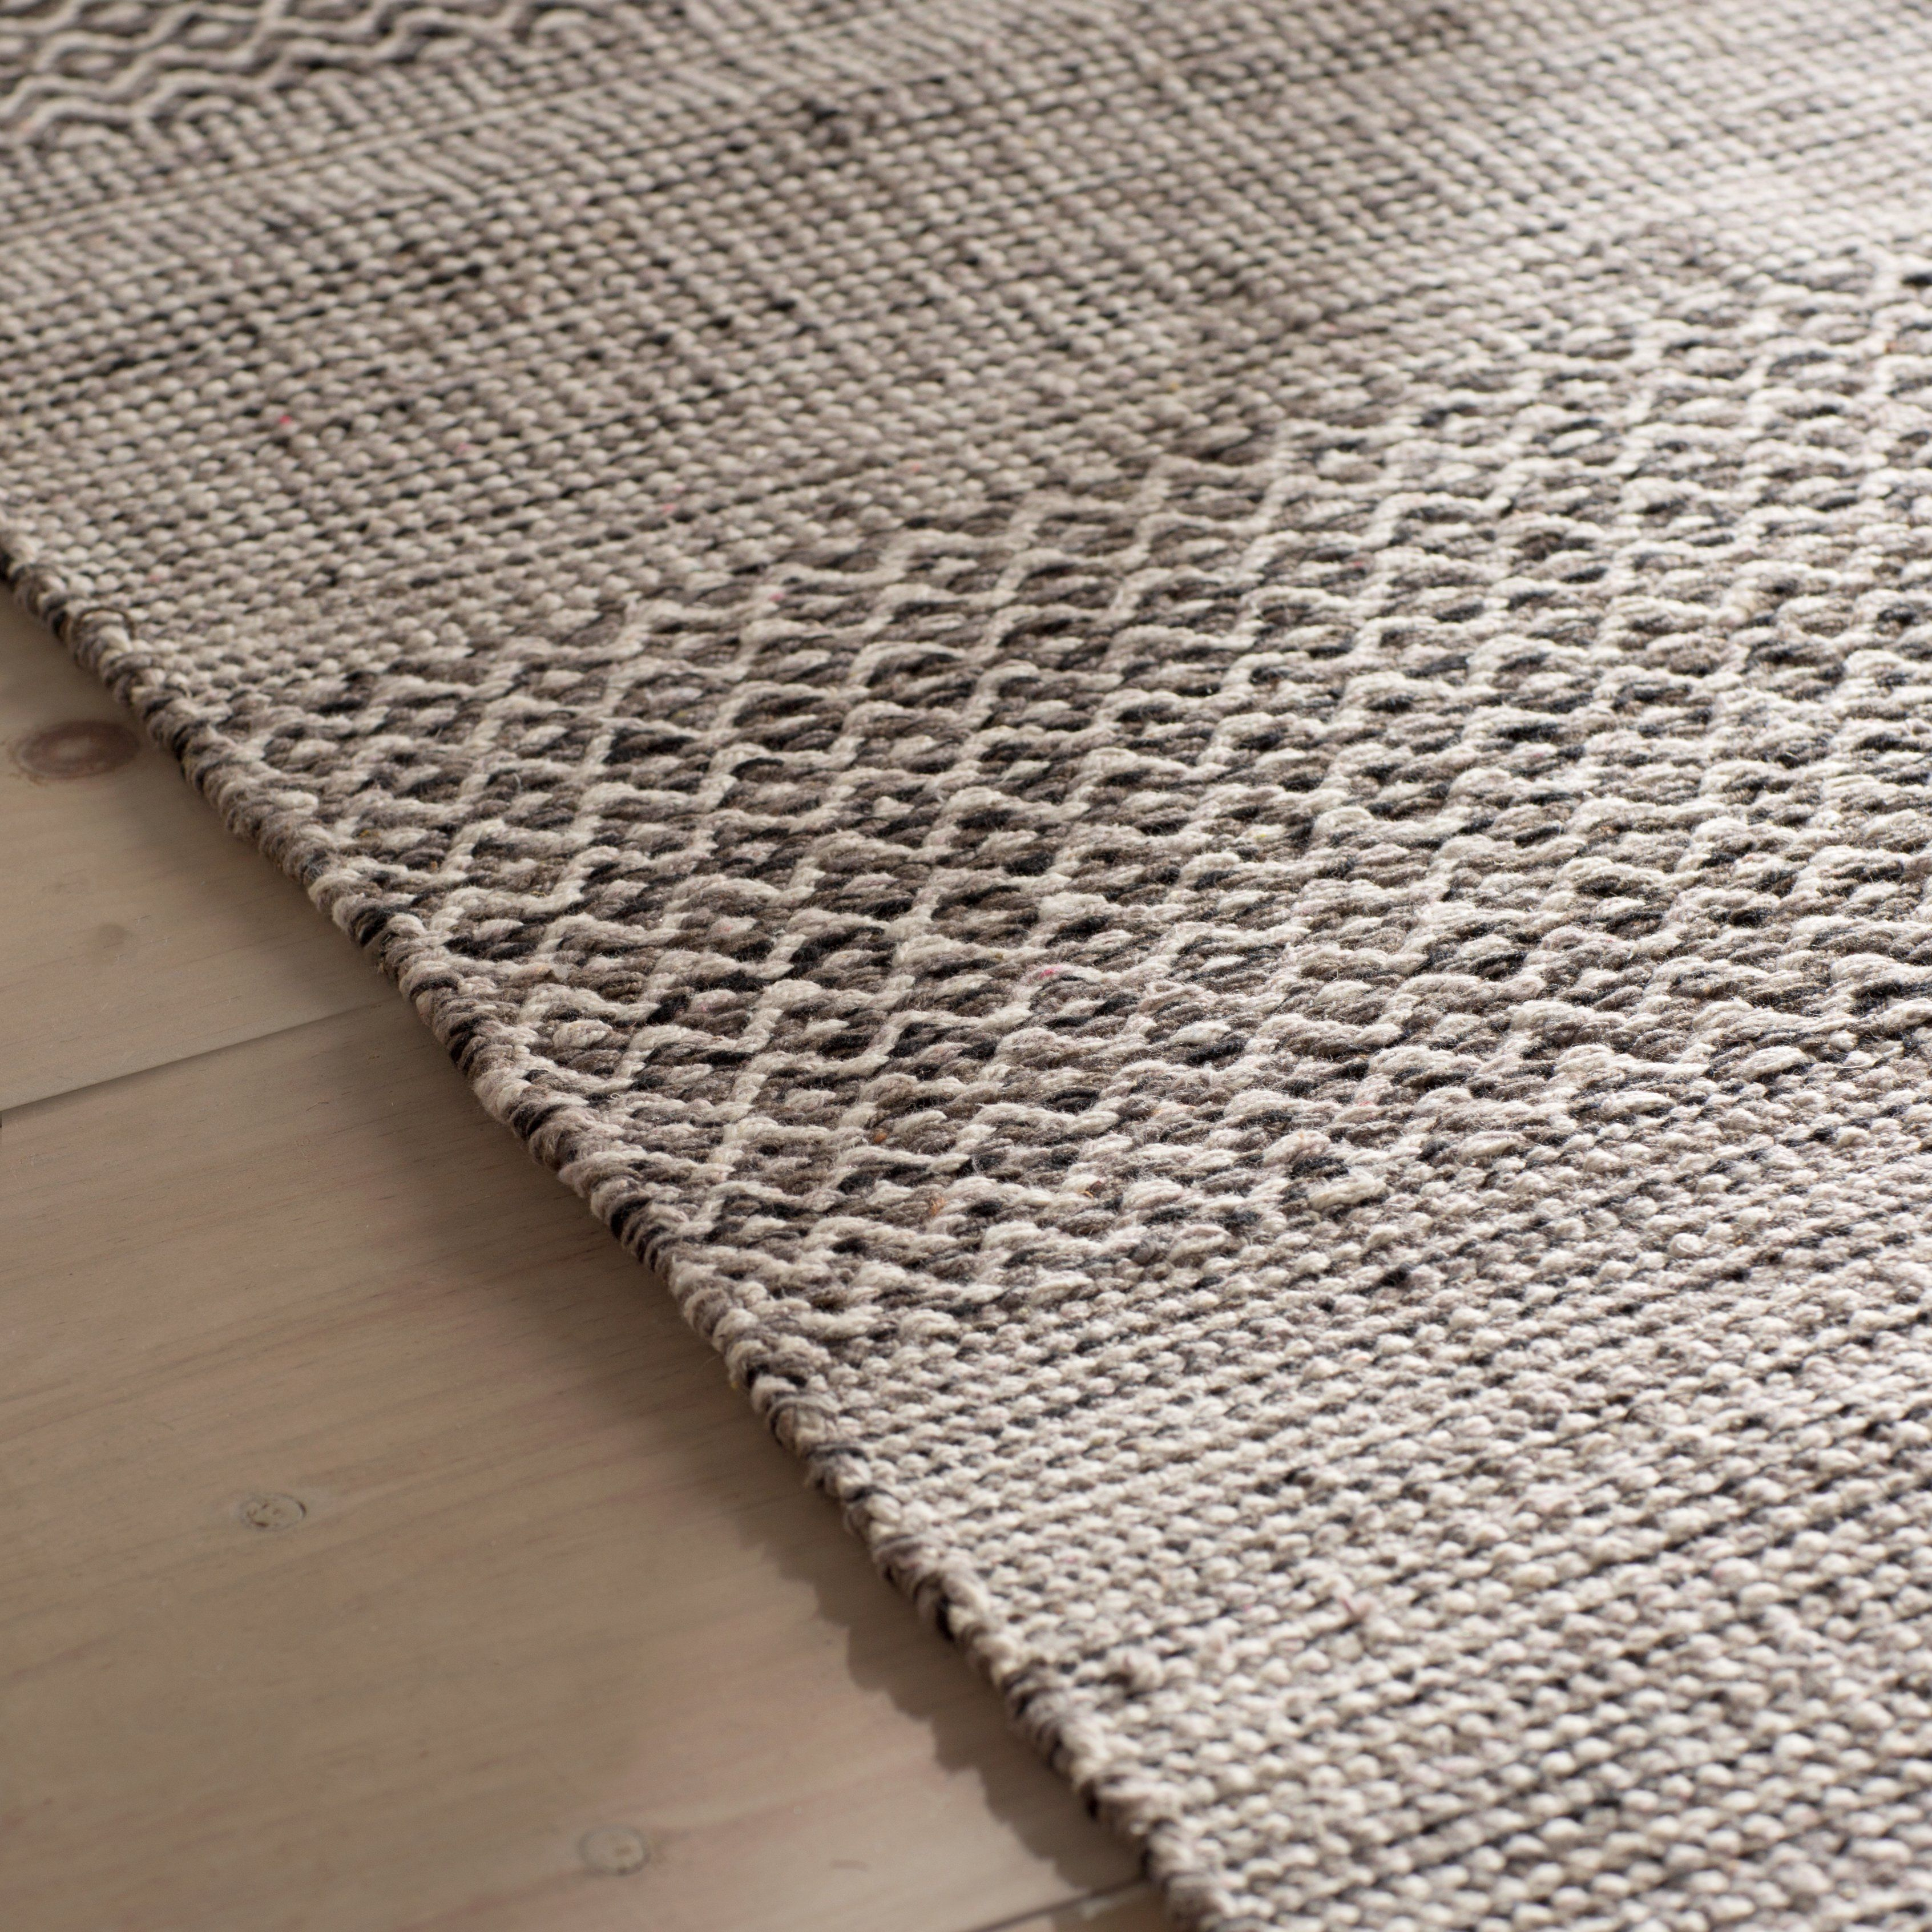 Jodi Striped Handmade Flatweave Cotton Ivory Anthracite Area Rug Rugs In Living Room Area Rugs Farmhouse Area Rugs